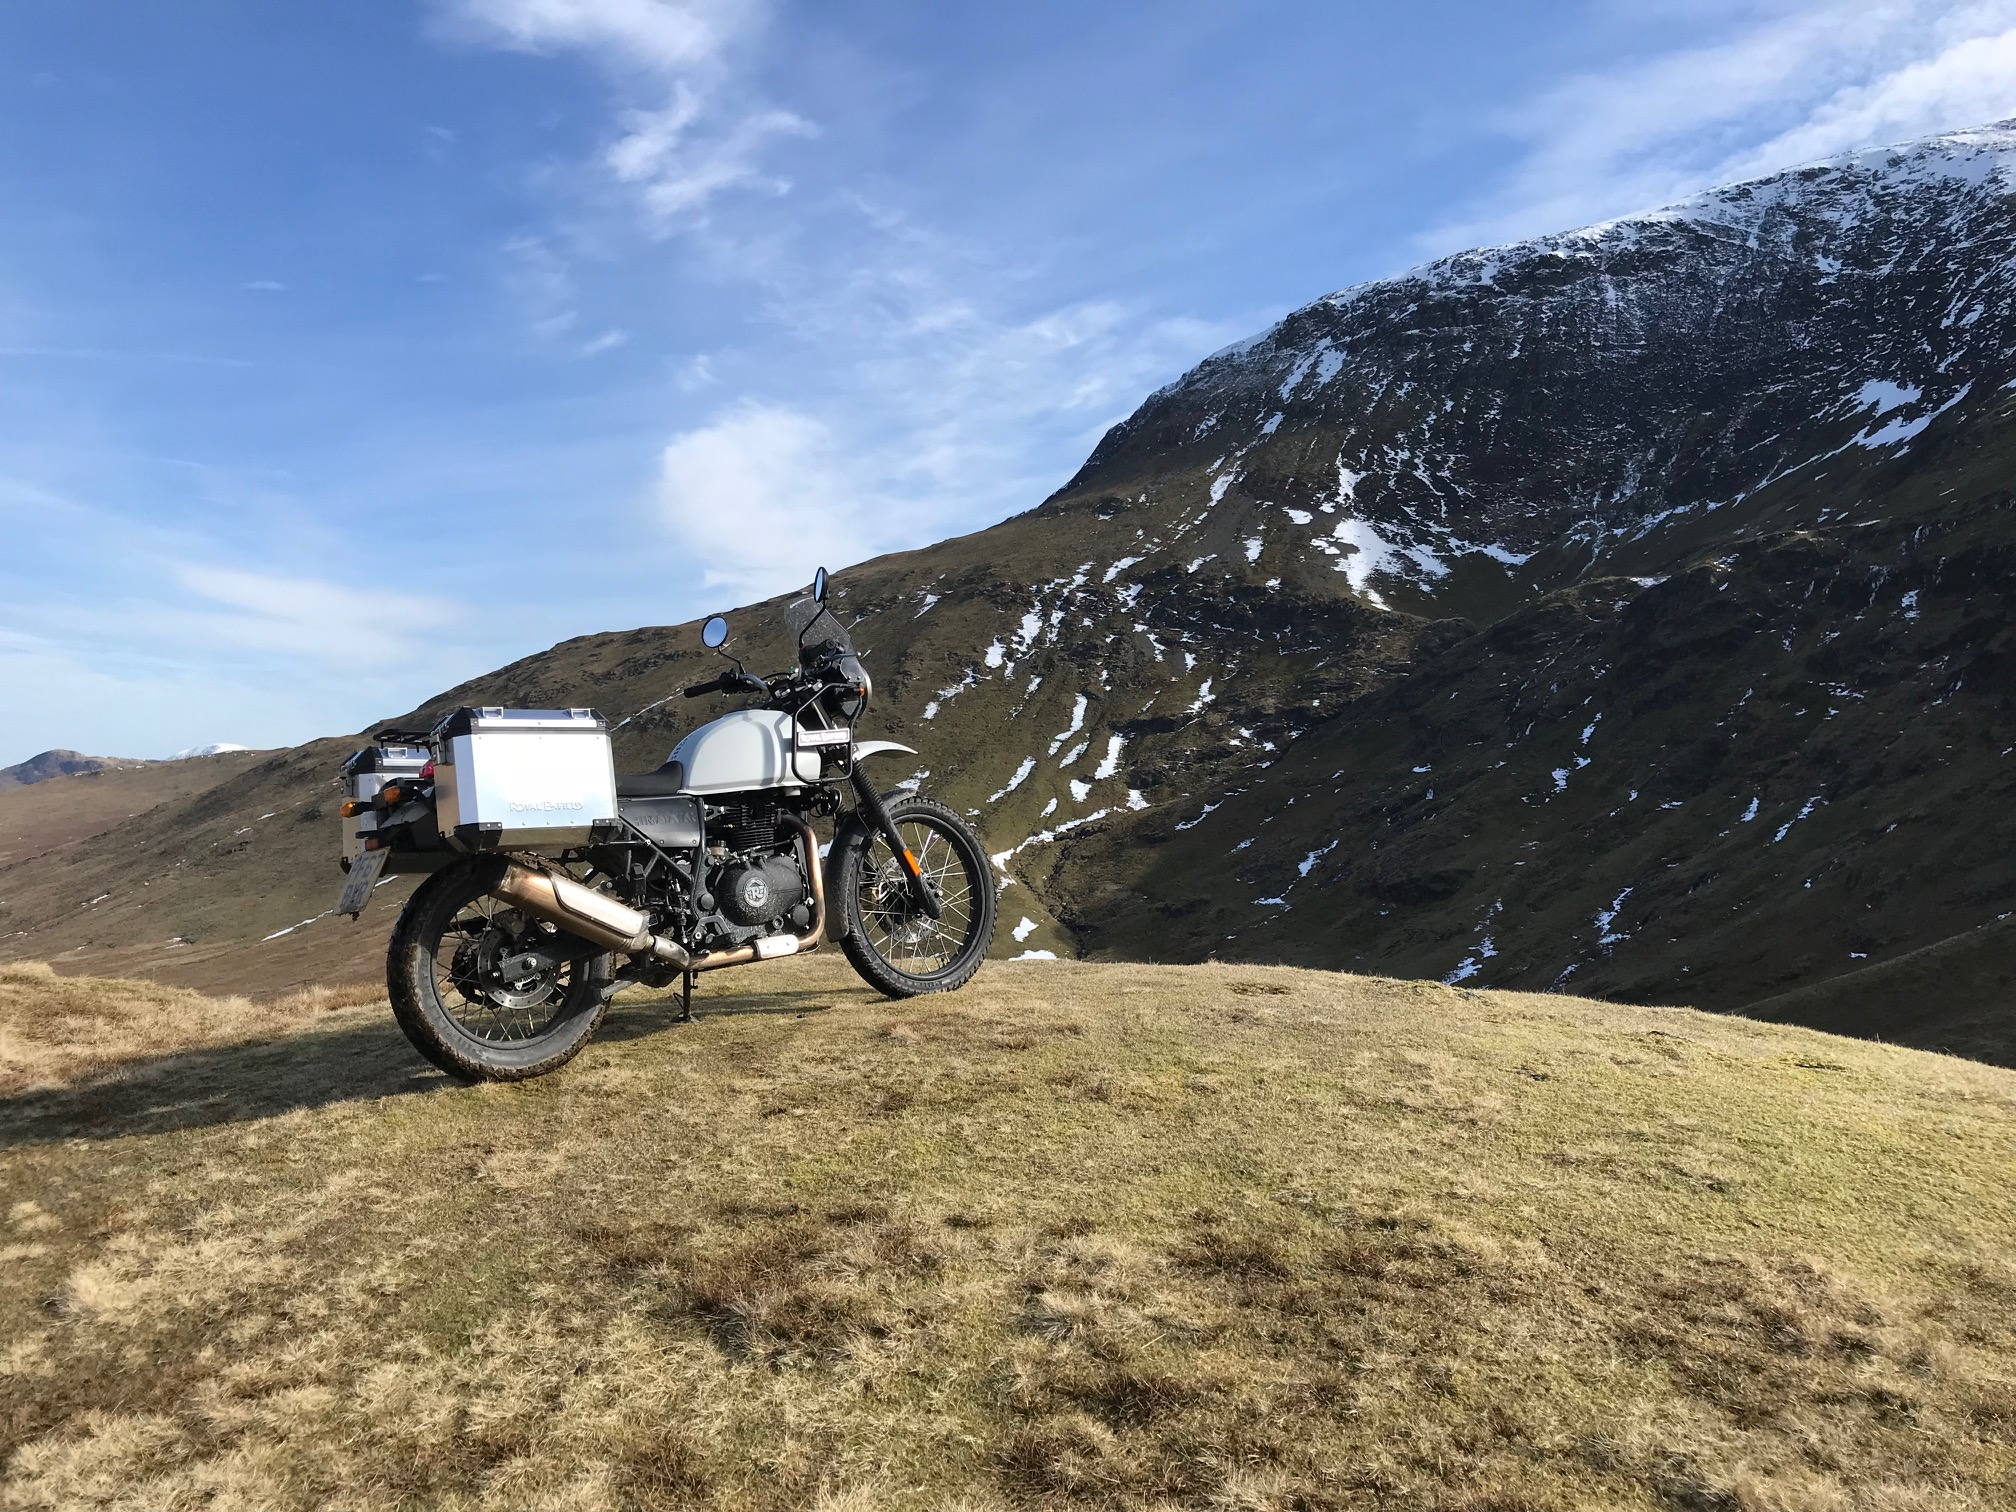 Exclusive! We ride Royal Enfield's new Himalayan